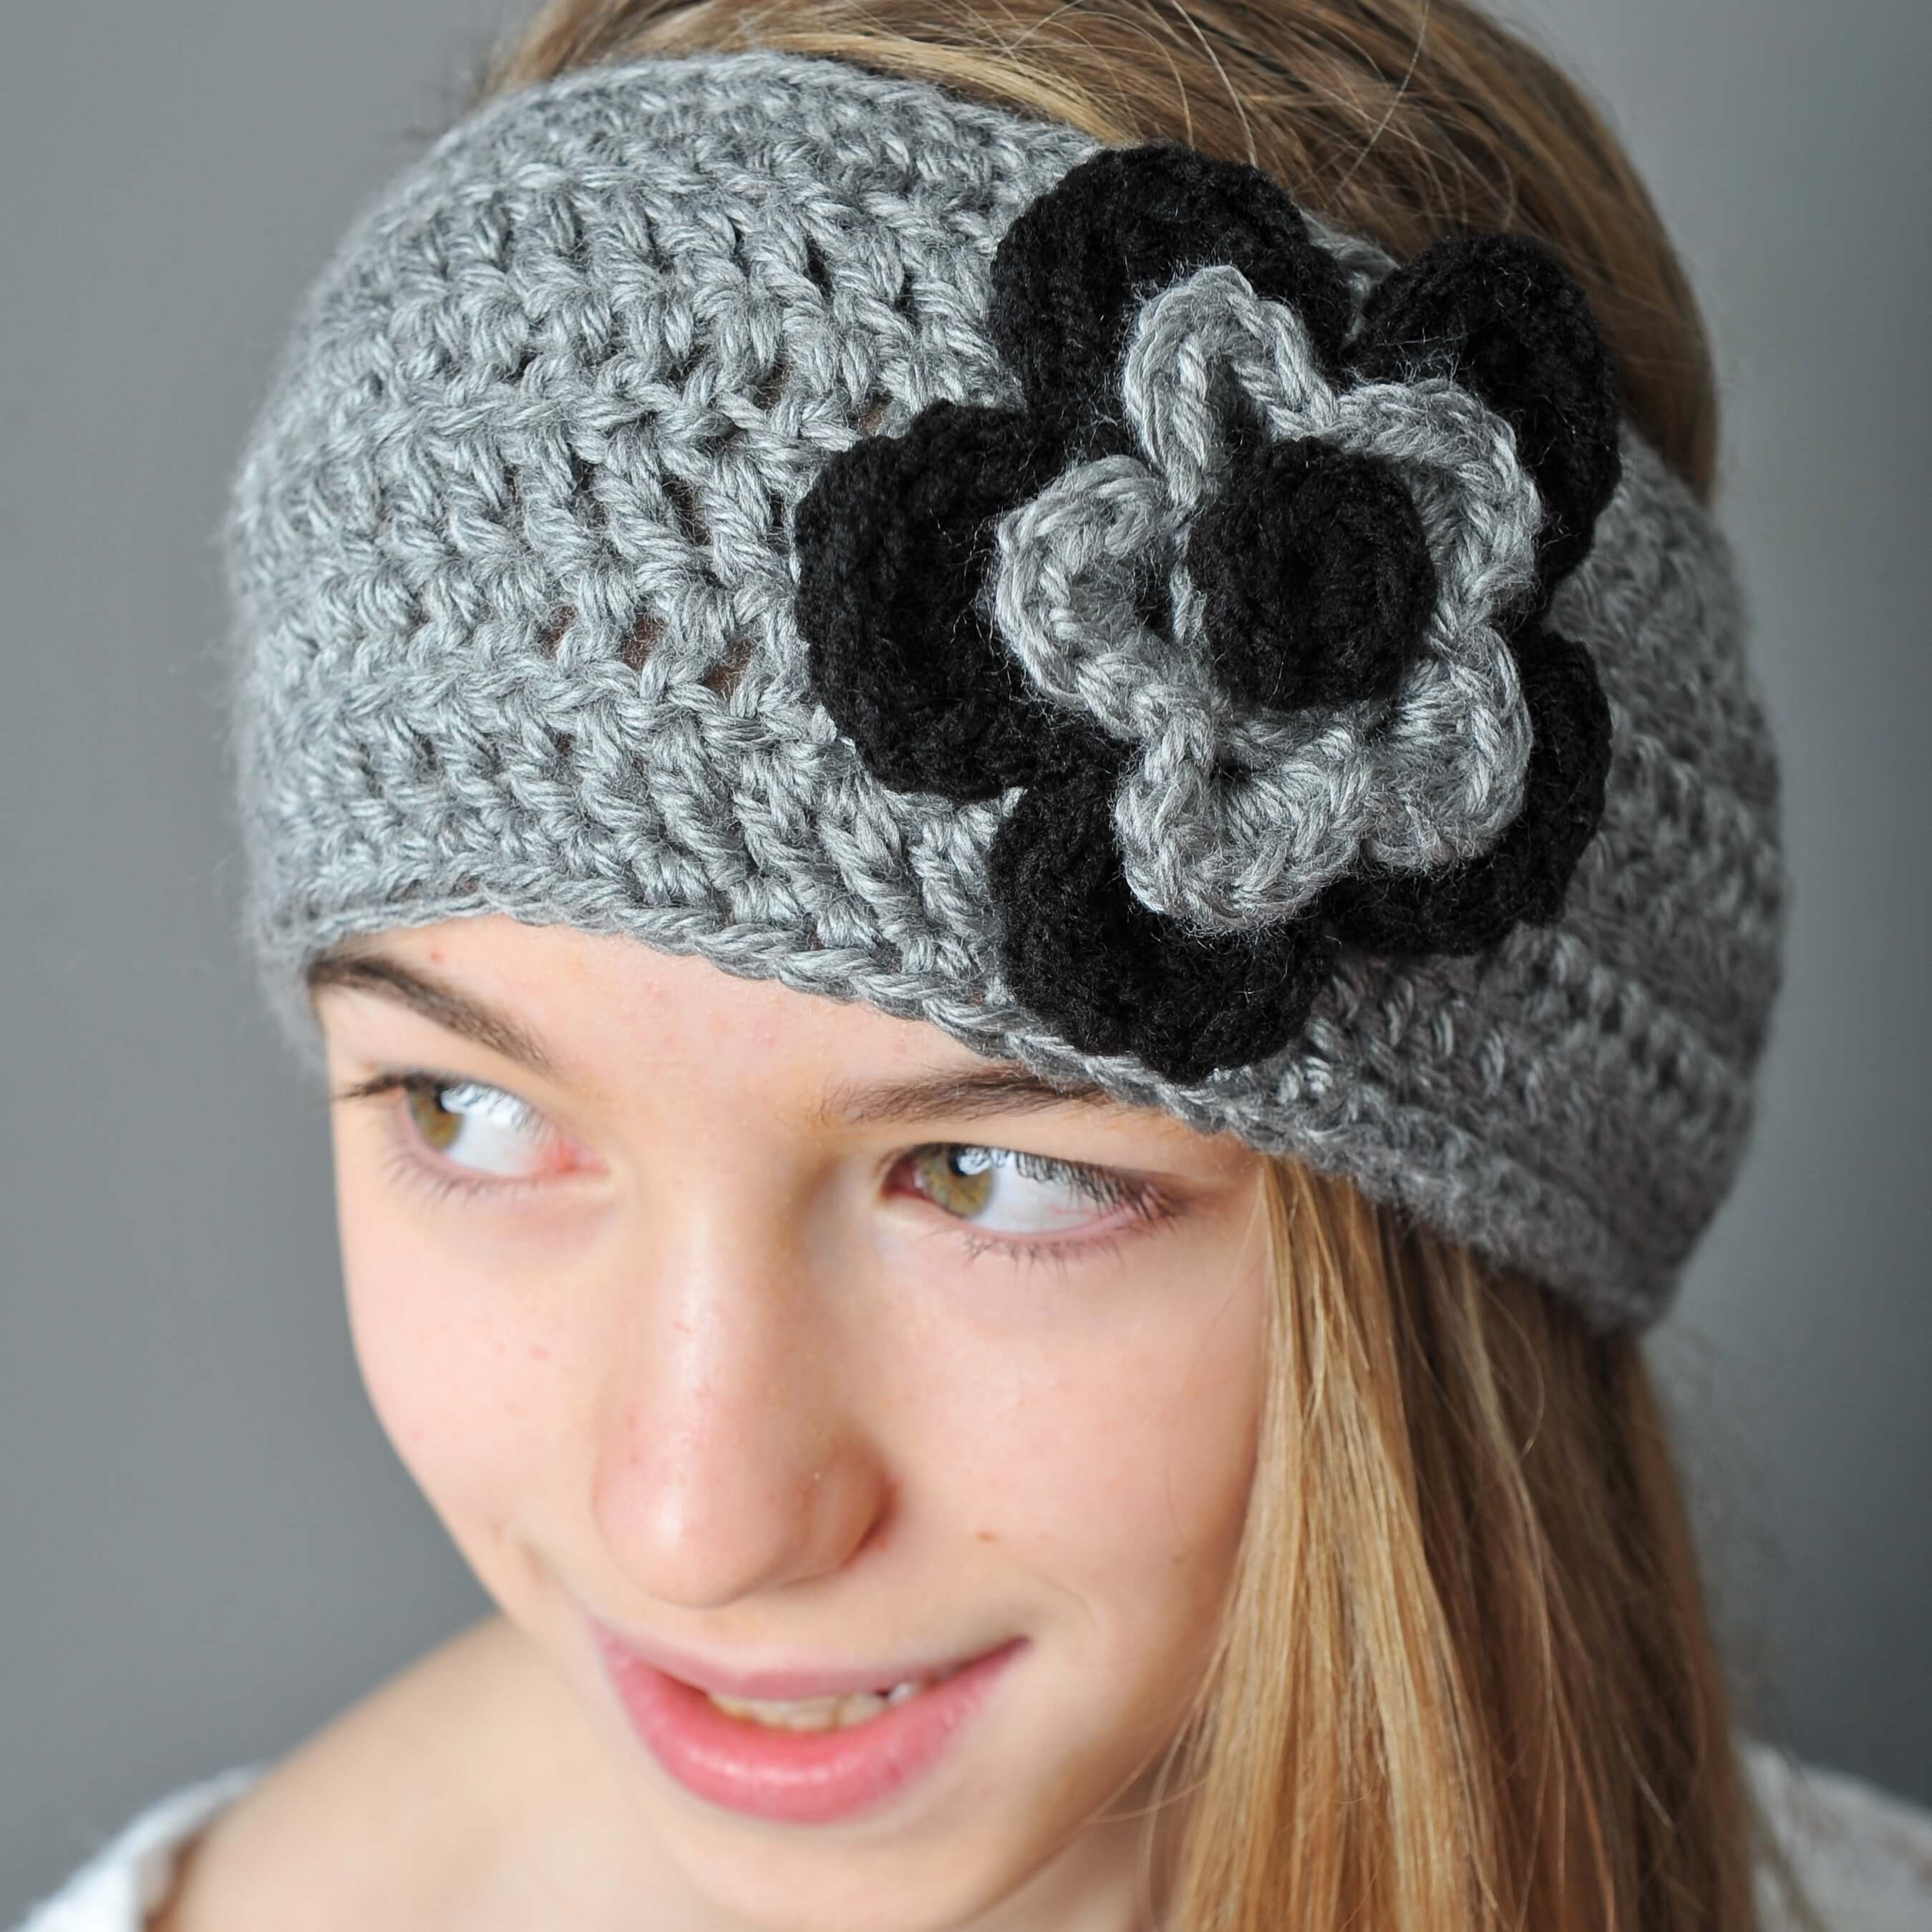 Crochet ear warmer with layered flowers petals to picots crochet ear warmer dt1010fo